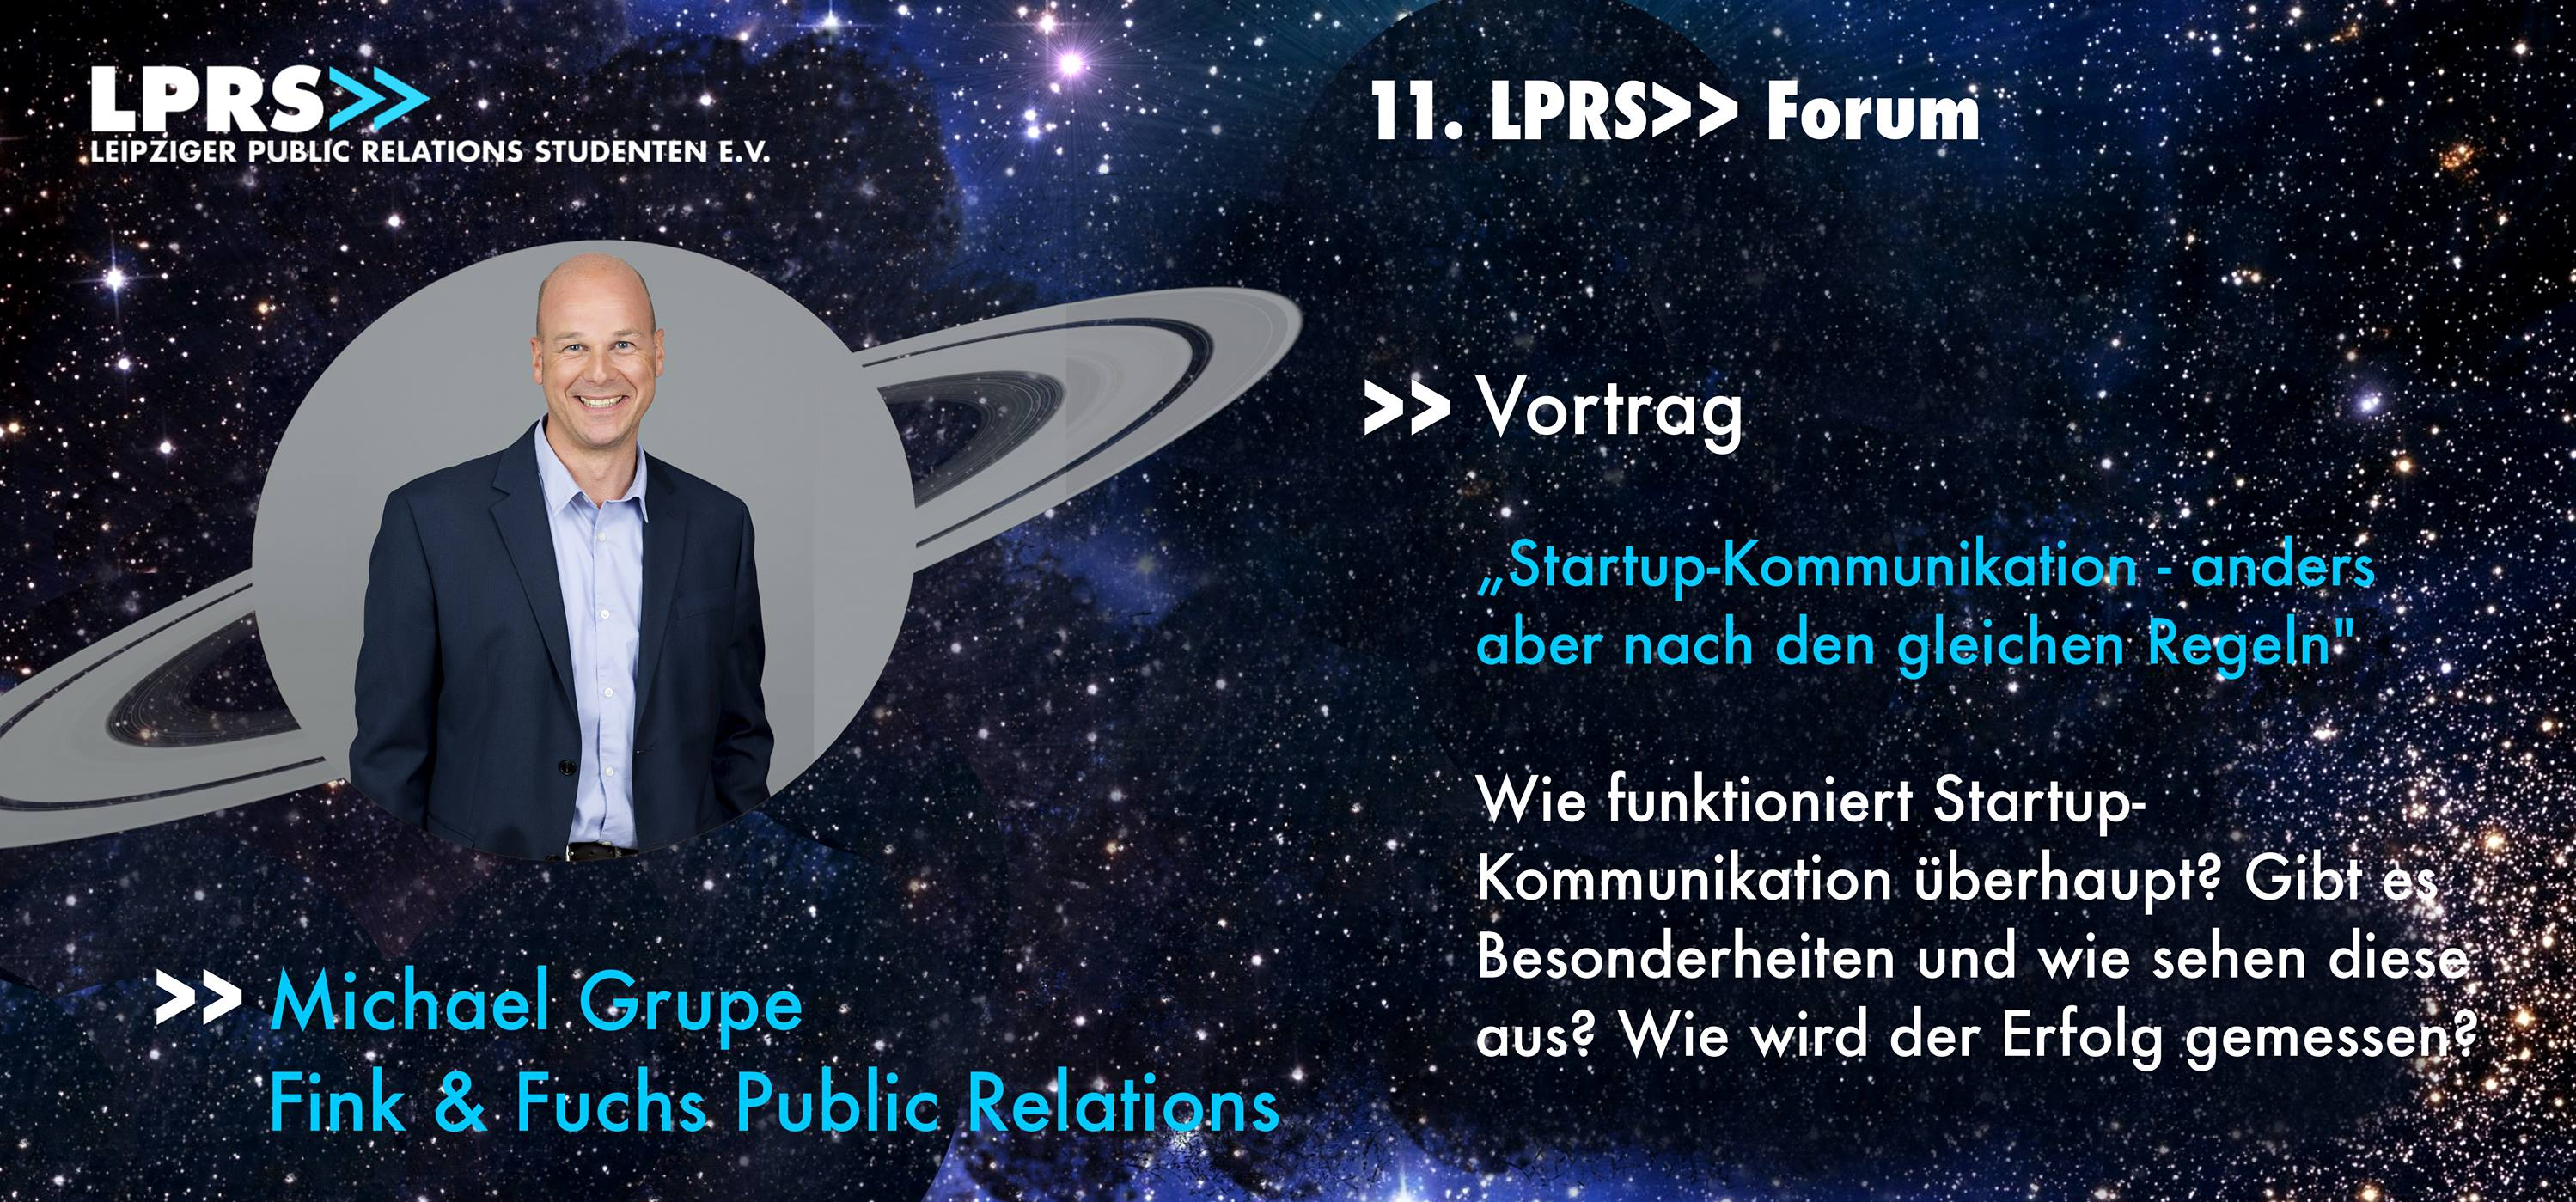 Start-up Kommunikation Fink Fuchs LPRS Forum